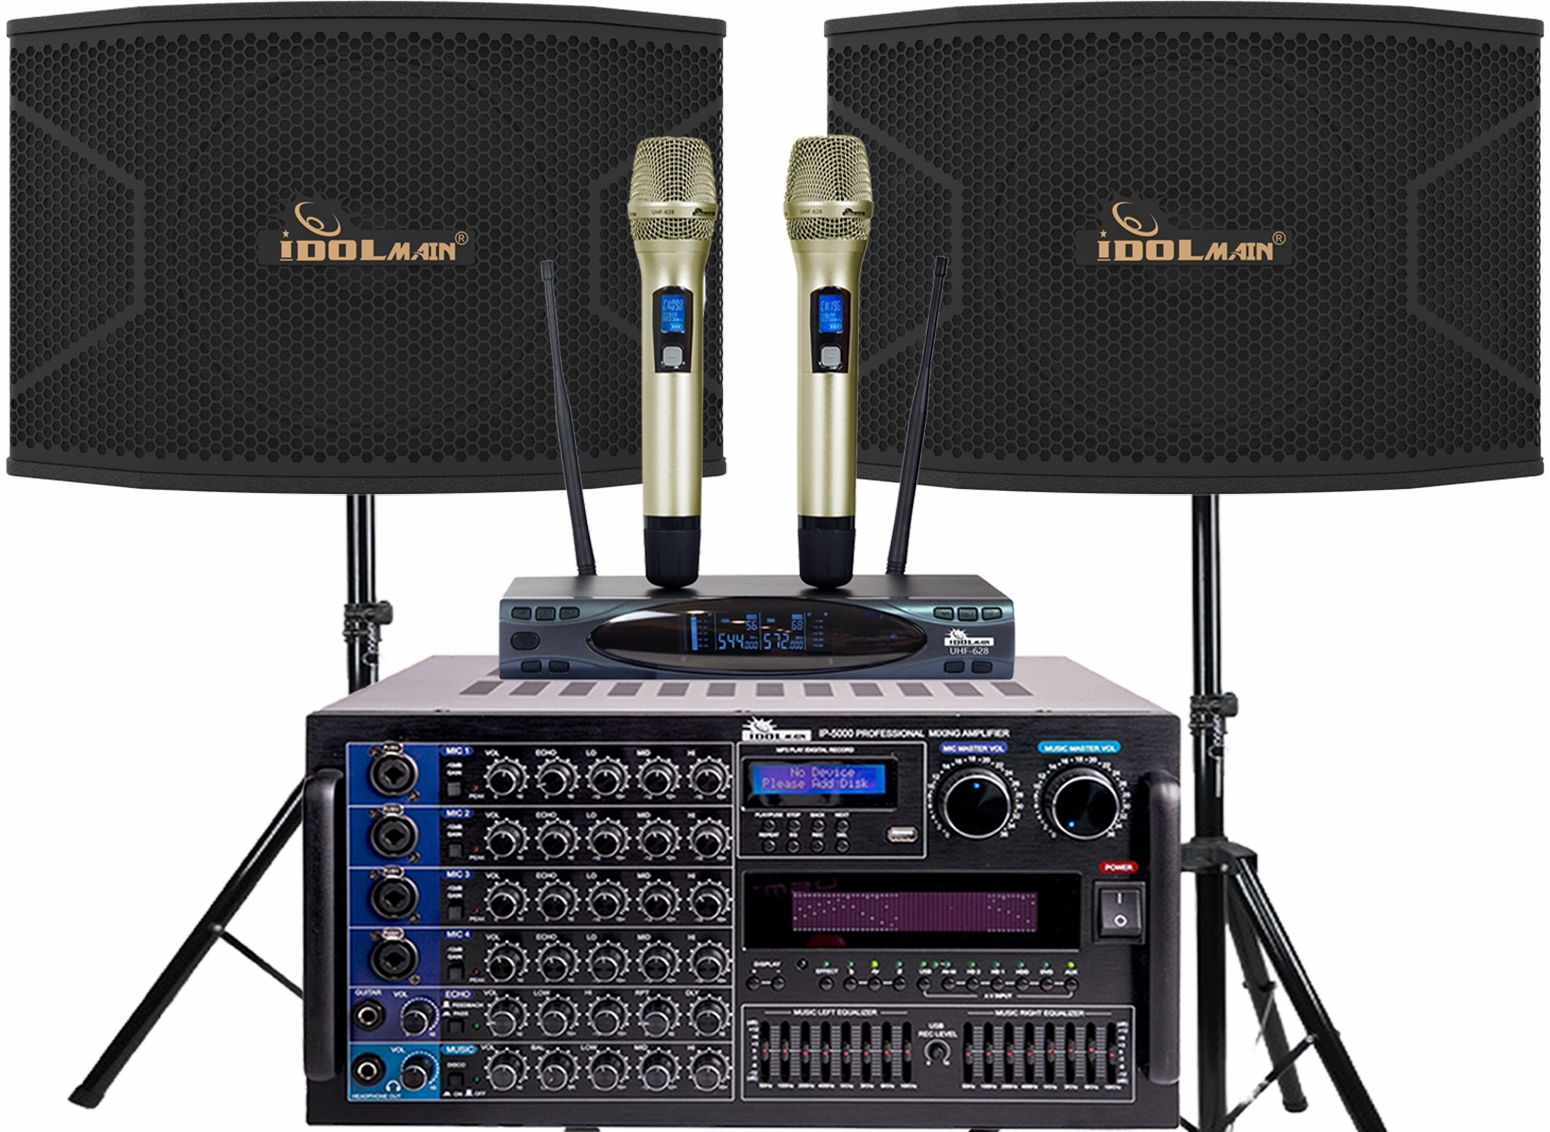 "<font color="" blue"">PACKAGE 9</font>--IPS-20 Speakers & UHF-628 Microphone & IP-5000 Mixing Amplifier"